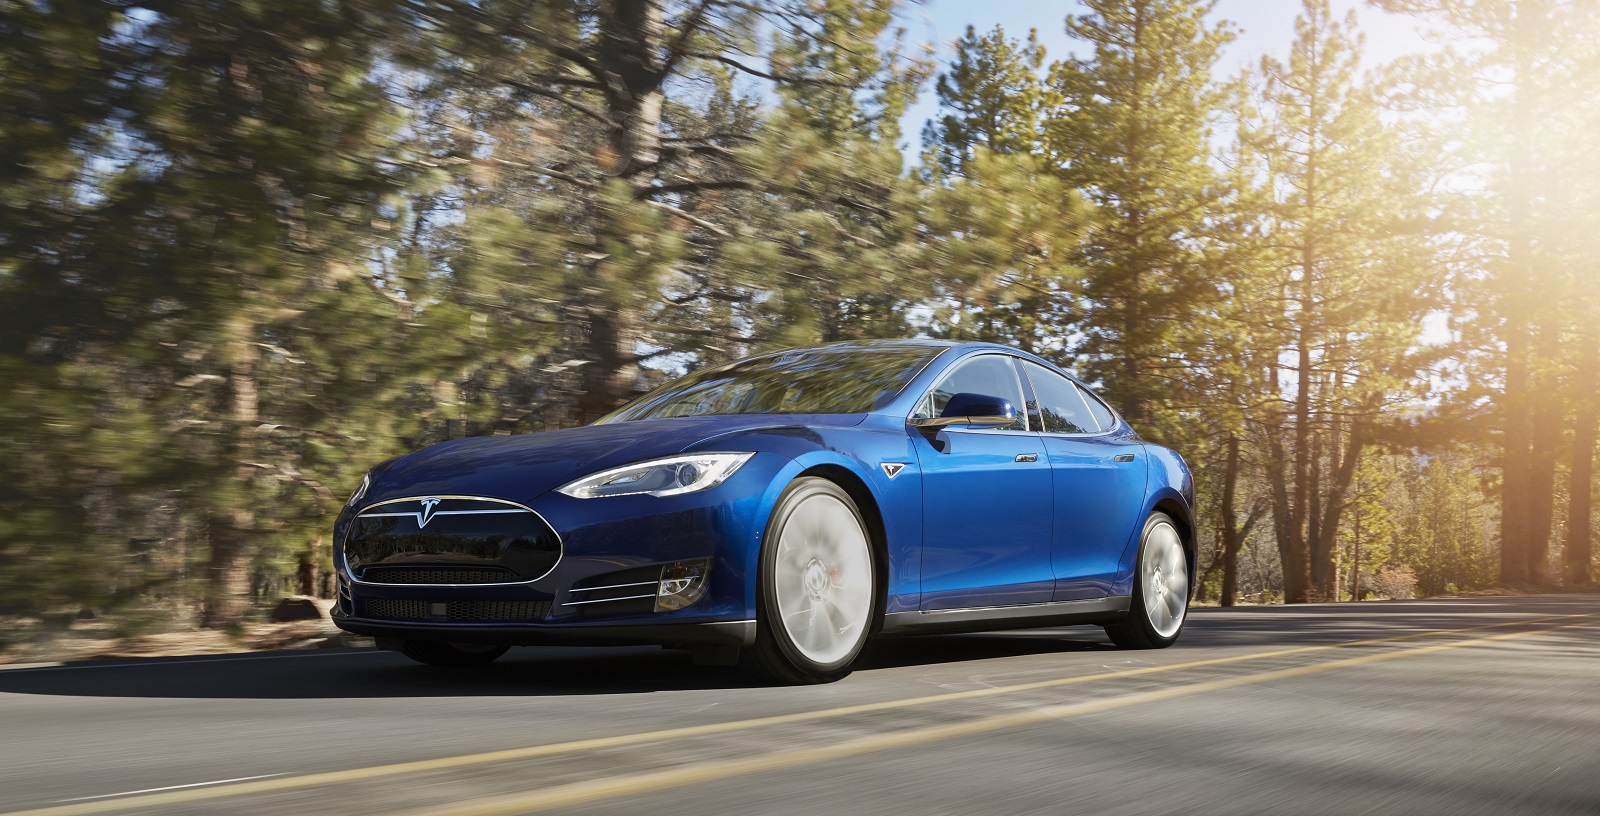 2015 Tesla Model S Review, Ratings, Specs, Prices, and ...